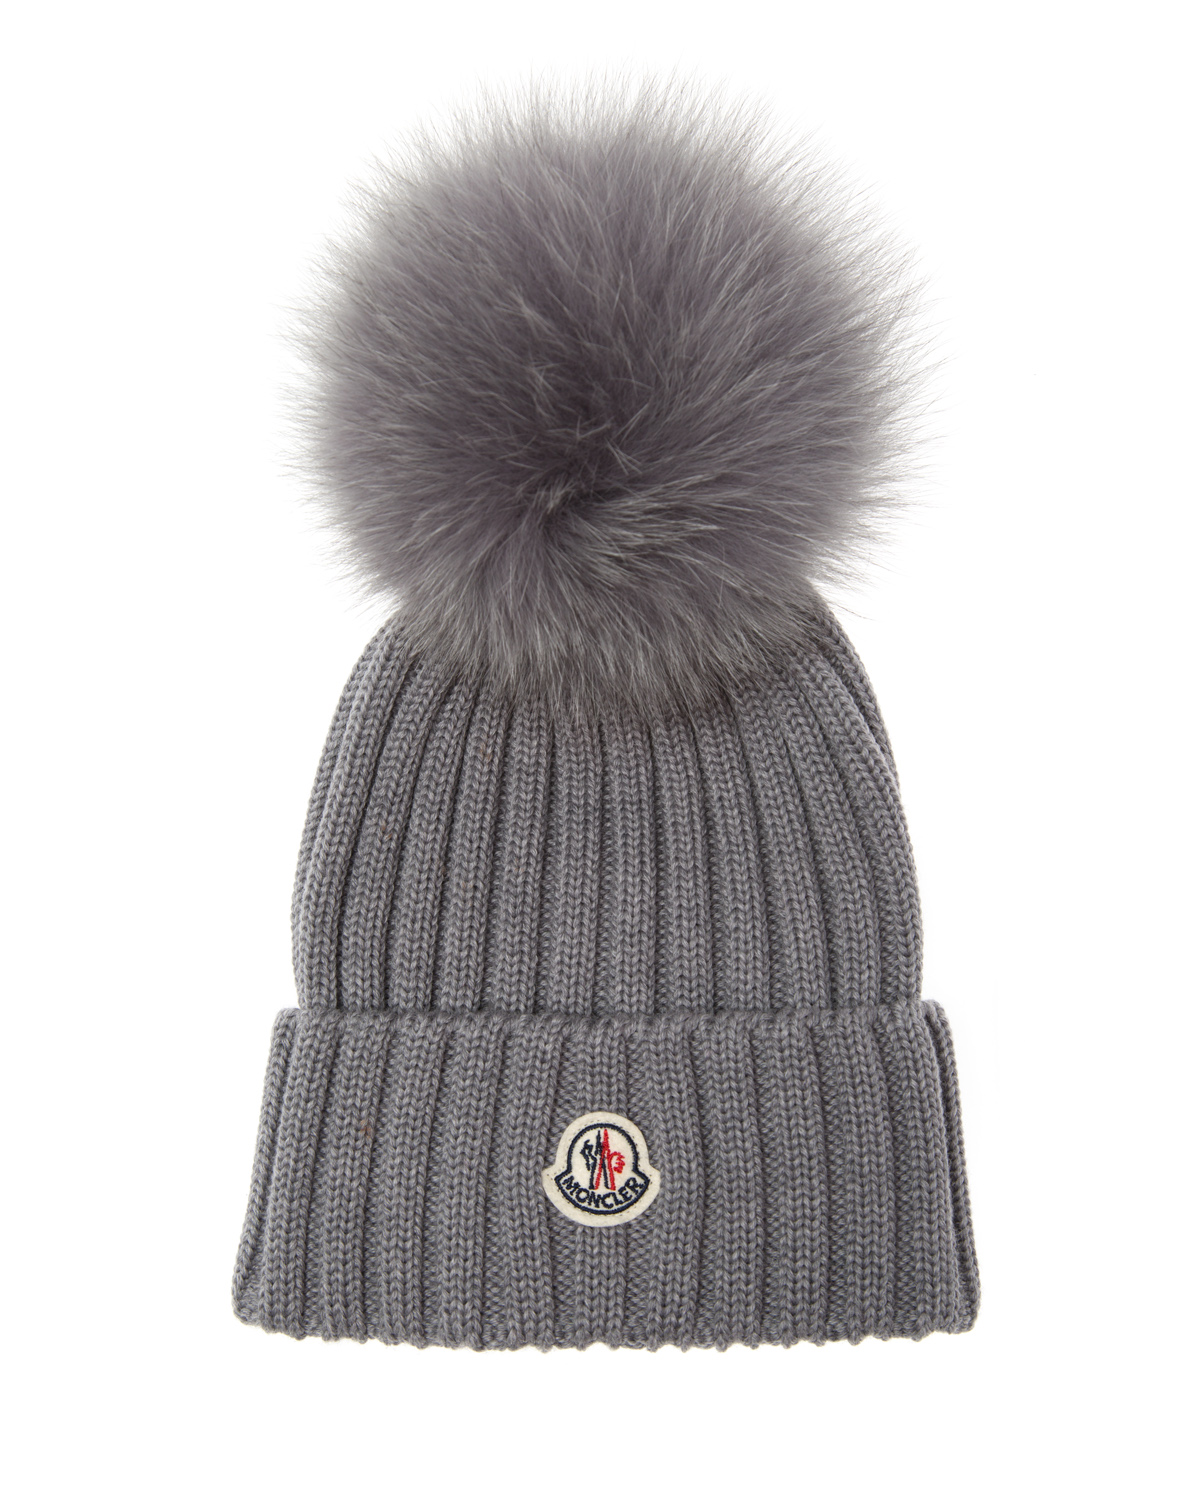 Moncler Women s Fur Pom Pom Beanie Hat Grey 85868 1 - Linea Fashion 3b123ab398